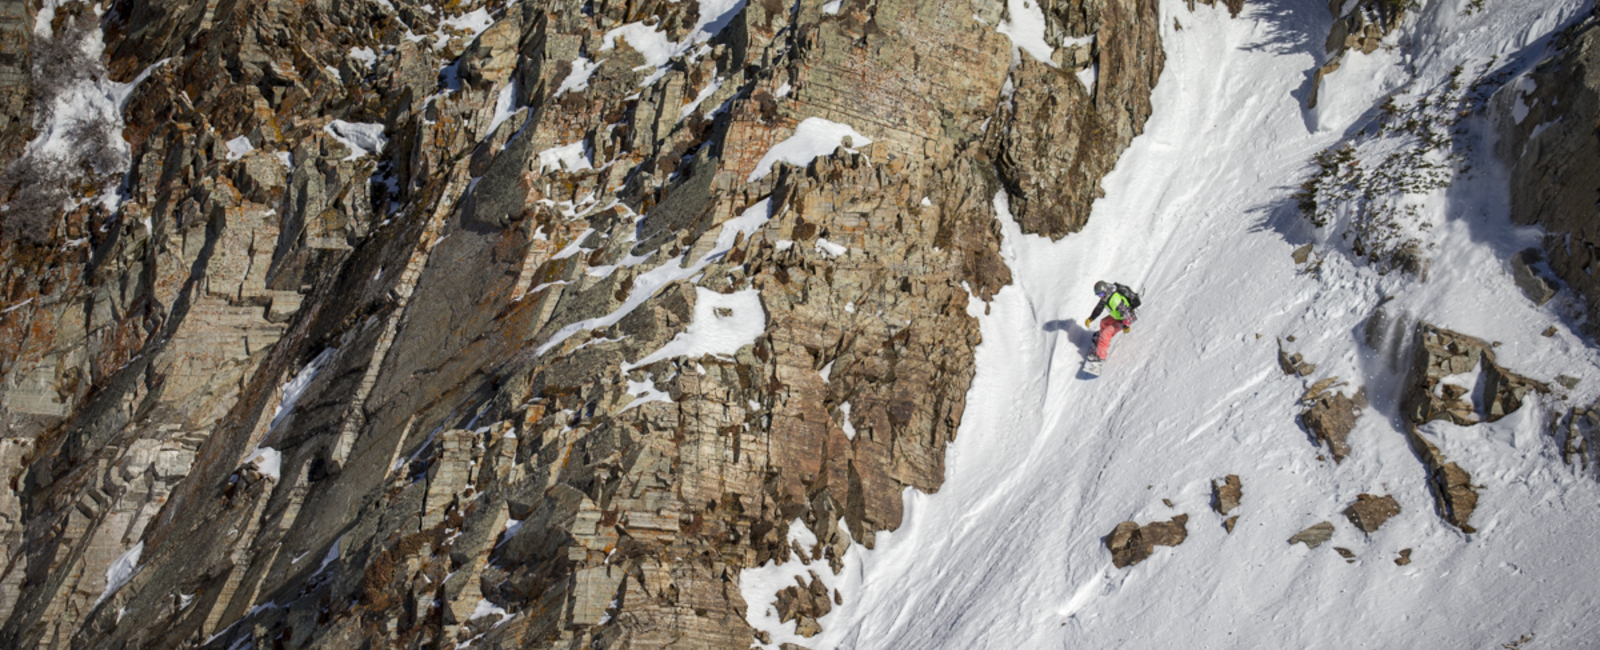 An Insider's Guide To Snowboard Utah's Freeride Zones